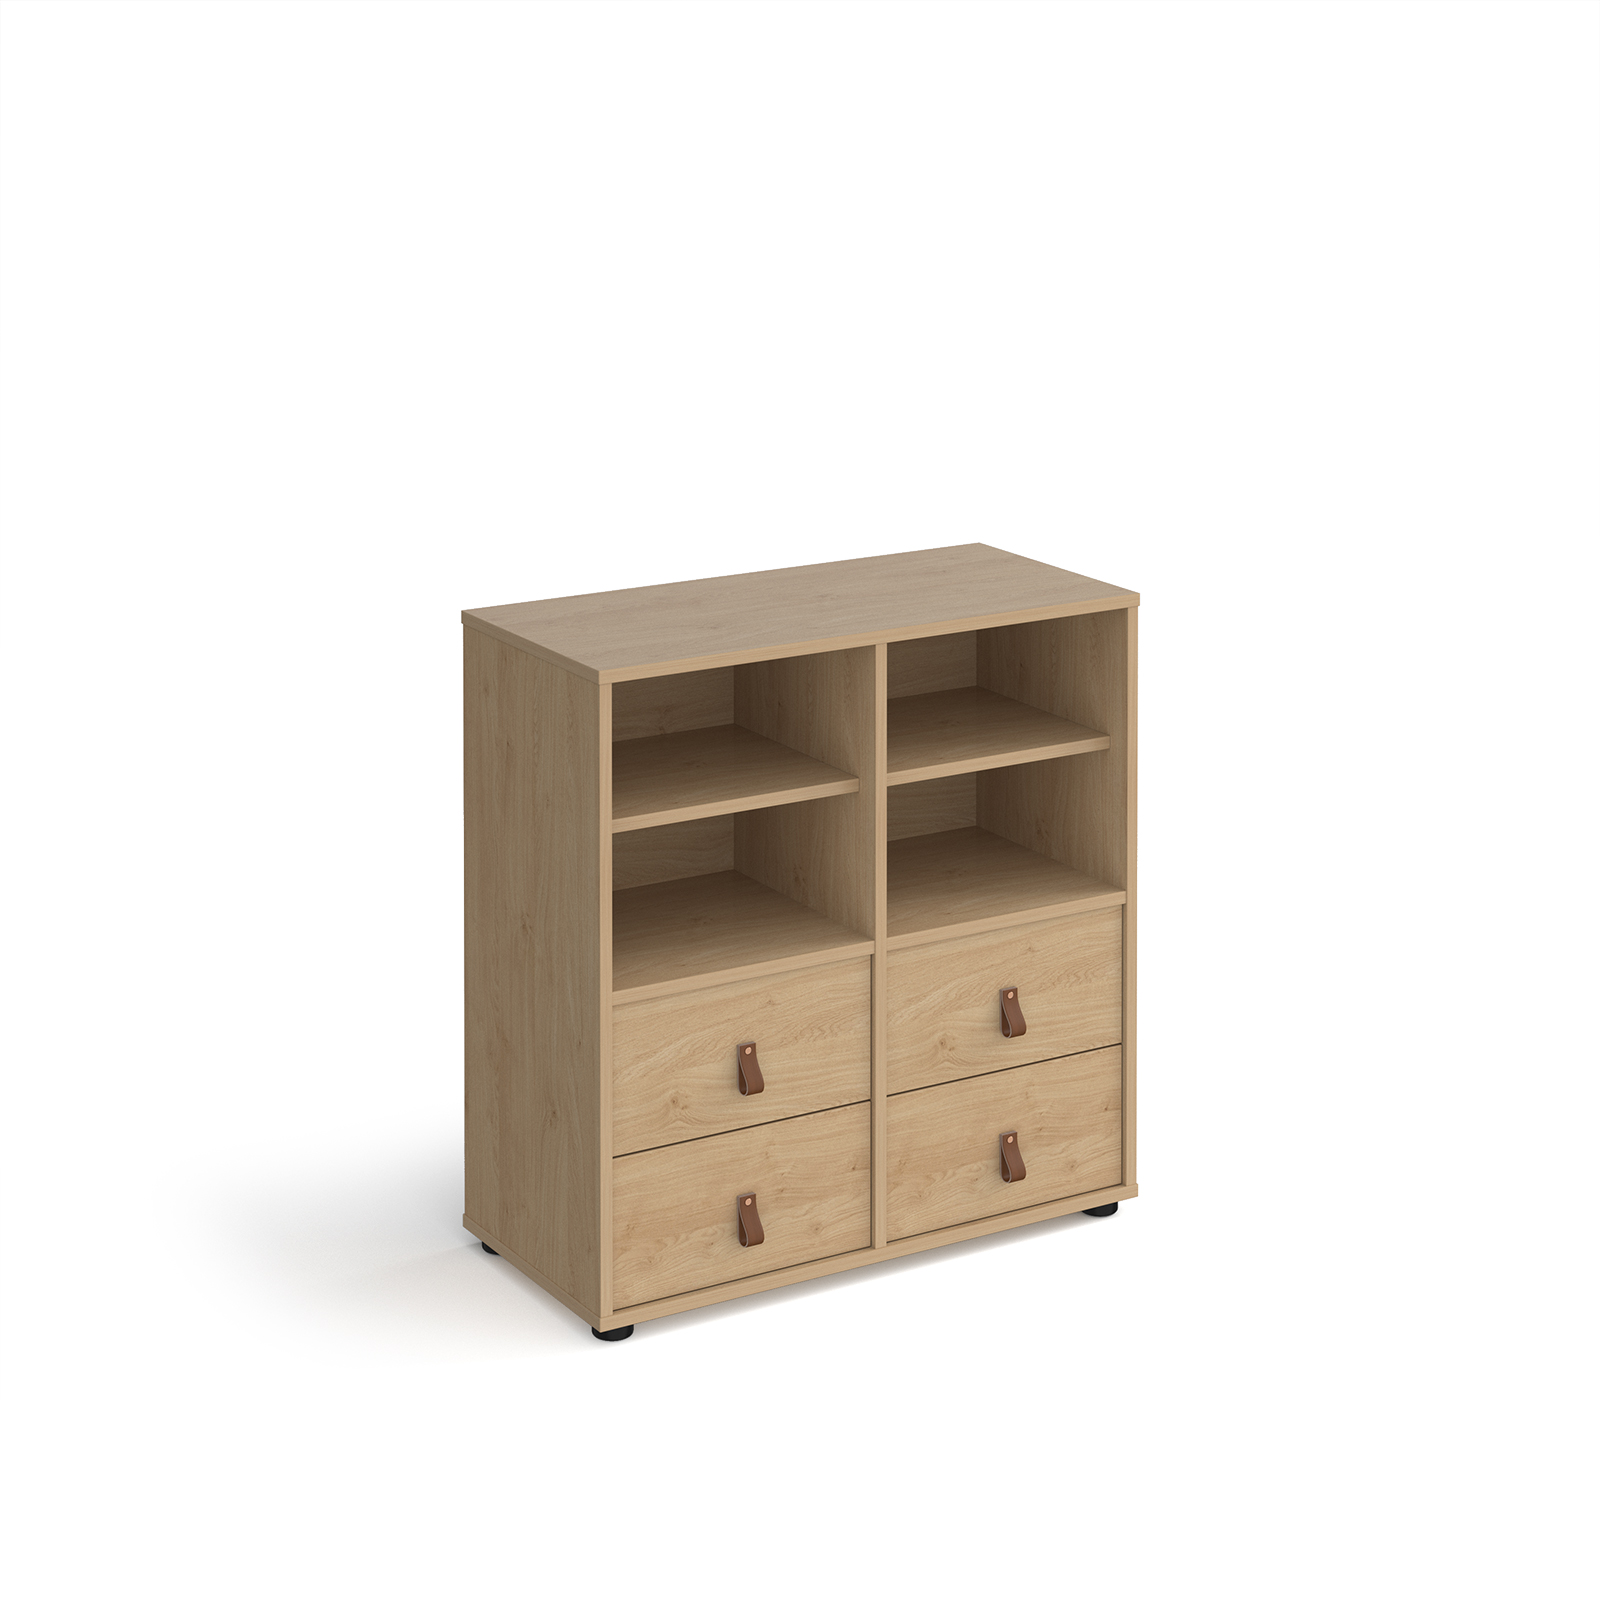 Universal cube storage unit bundle 3